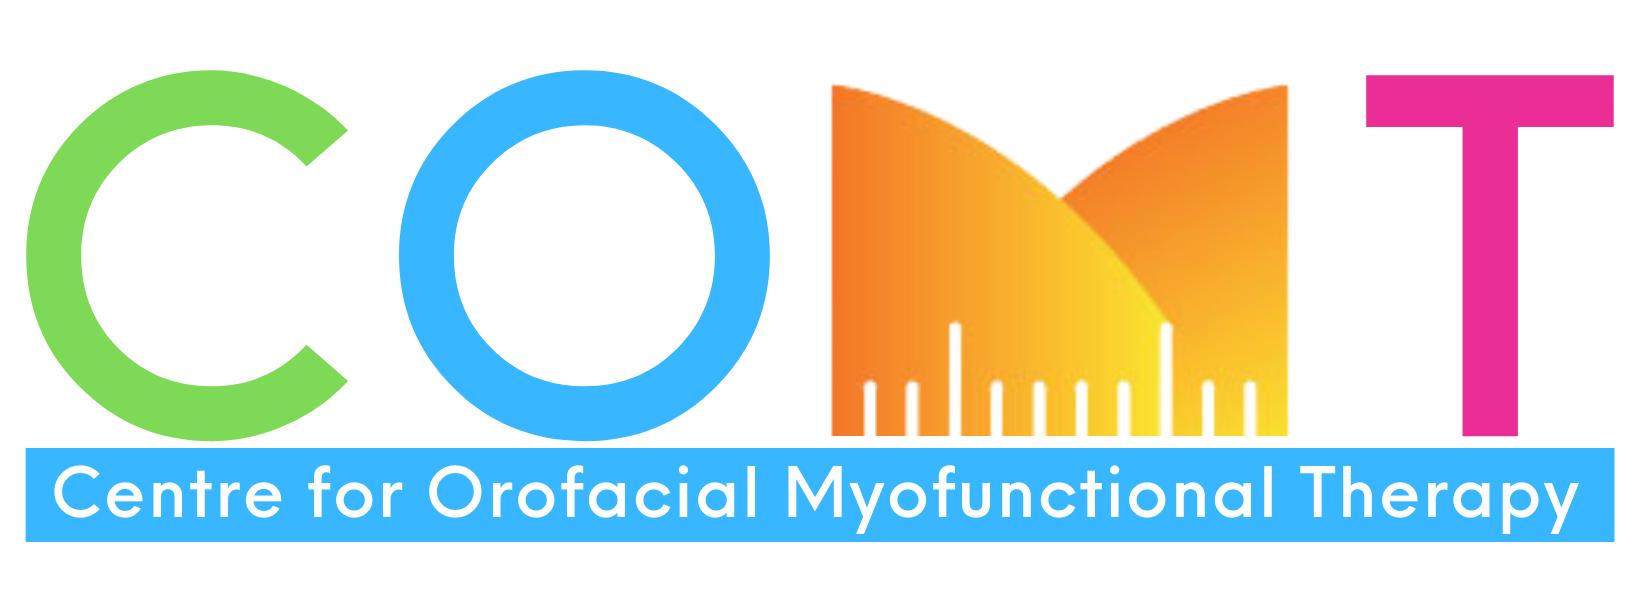 Copy of Centre for Orofacial Myofunctional Therapy